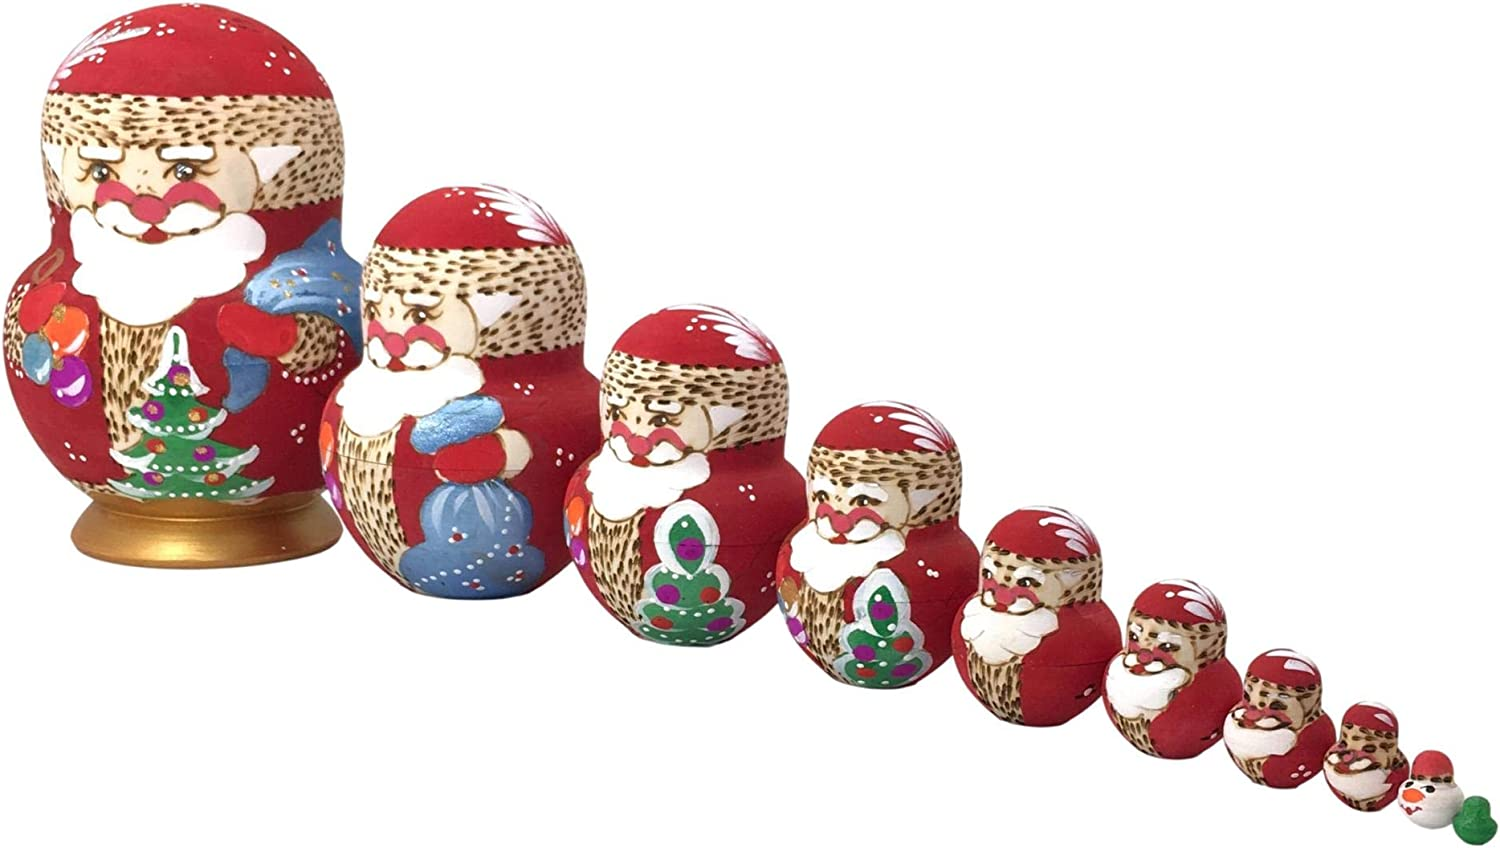 10 Max 83% OFF Pieces Set safety Russian Santa Handcrafted Crafted Ma Nesting Dolls